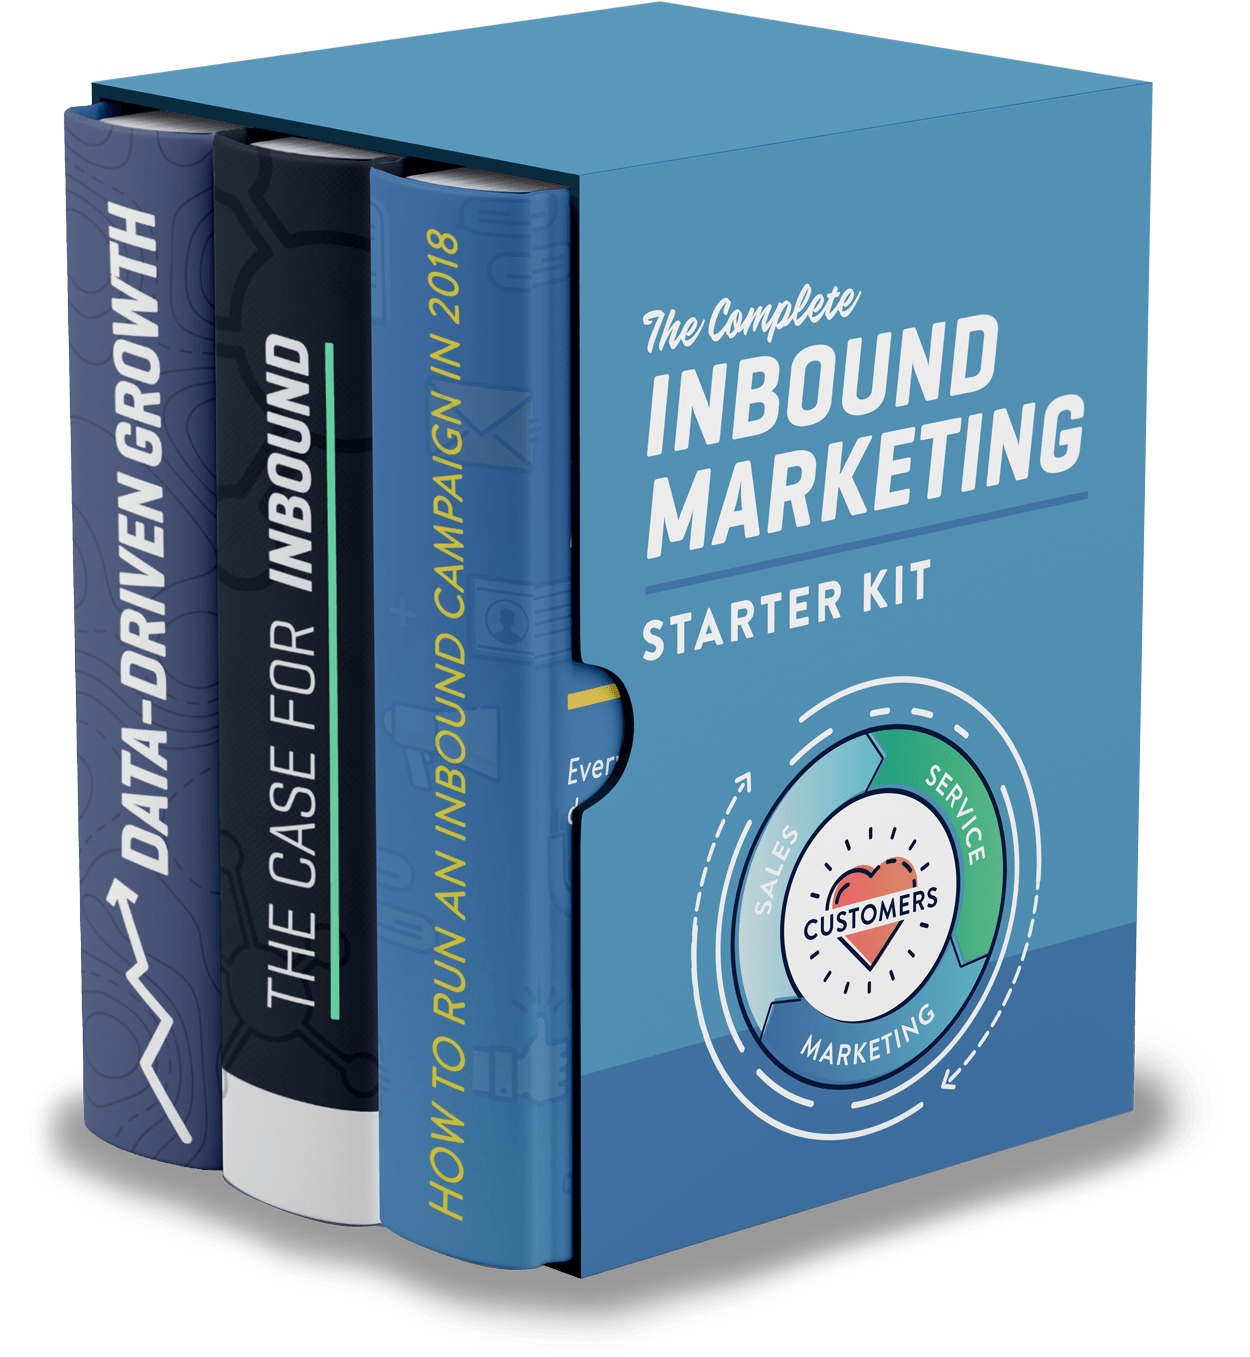 Inbound marketing starter kit